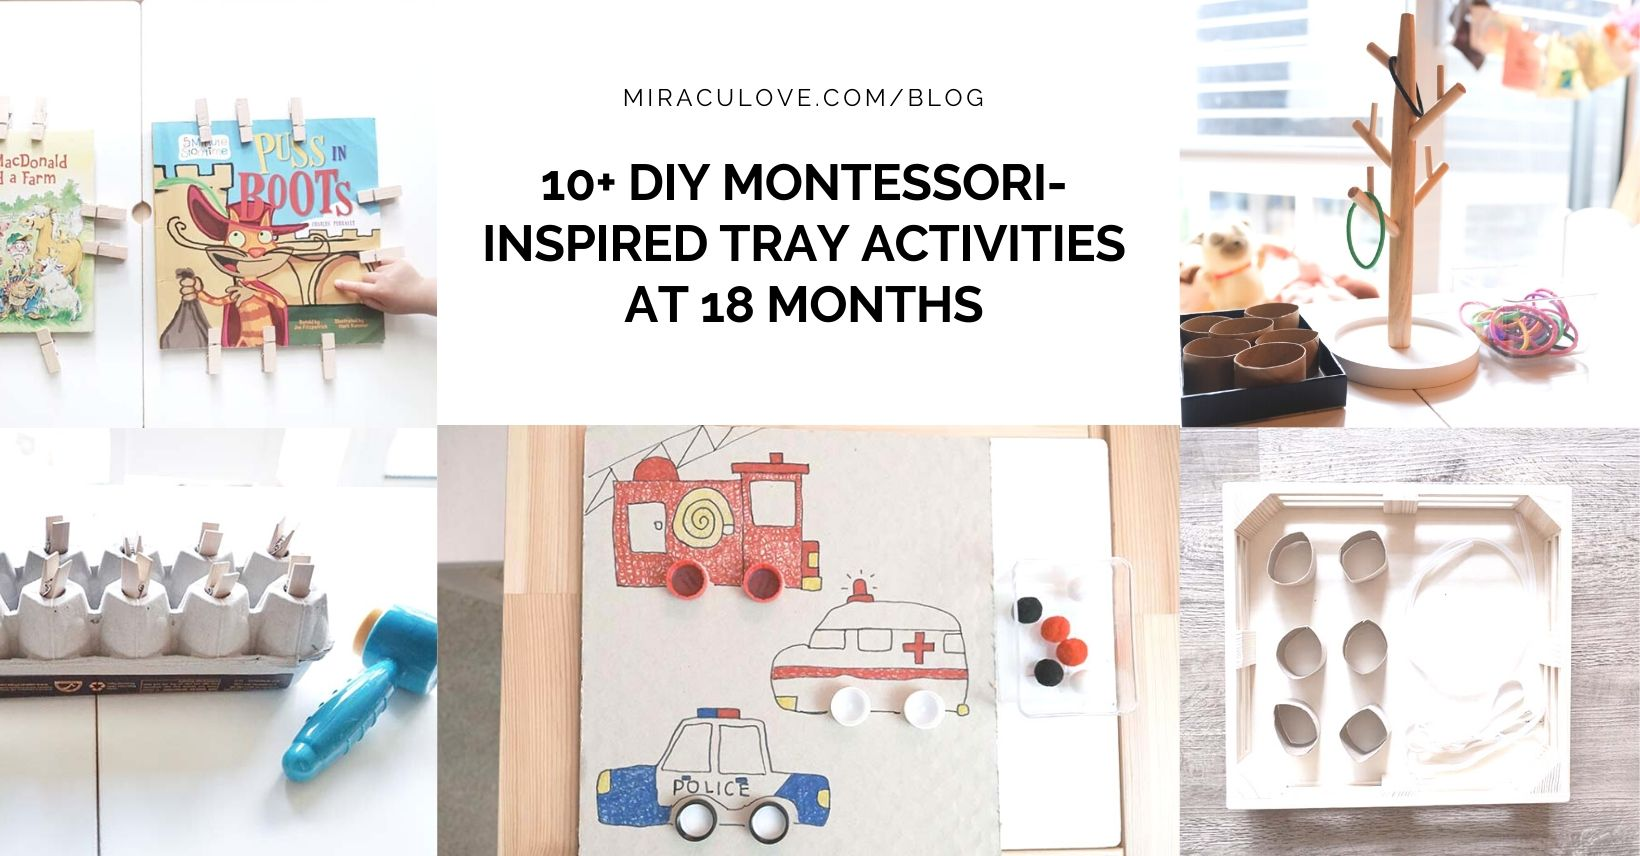 10+ DIY Montessori-inspired Tray Activities at 18 Months